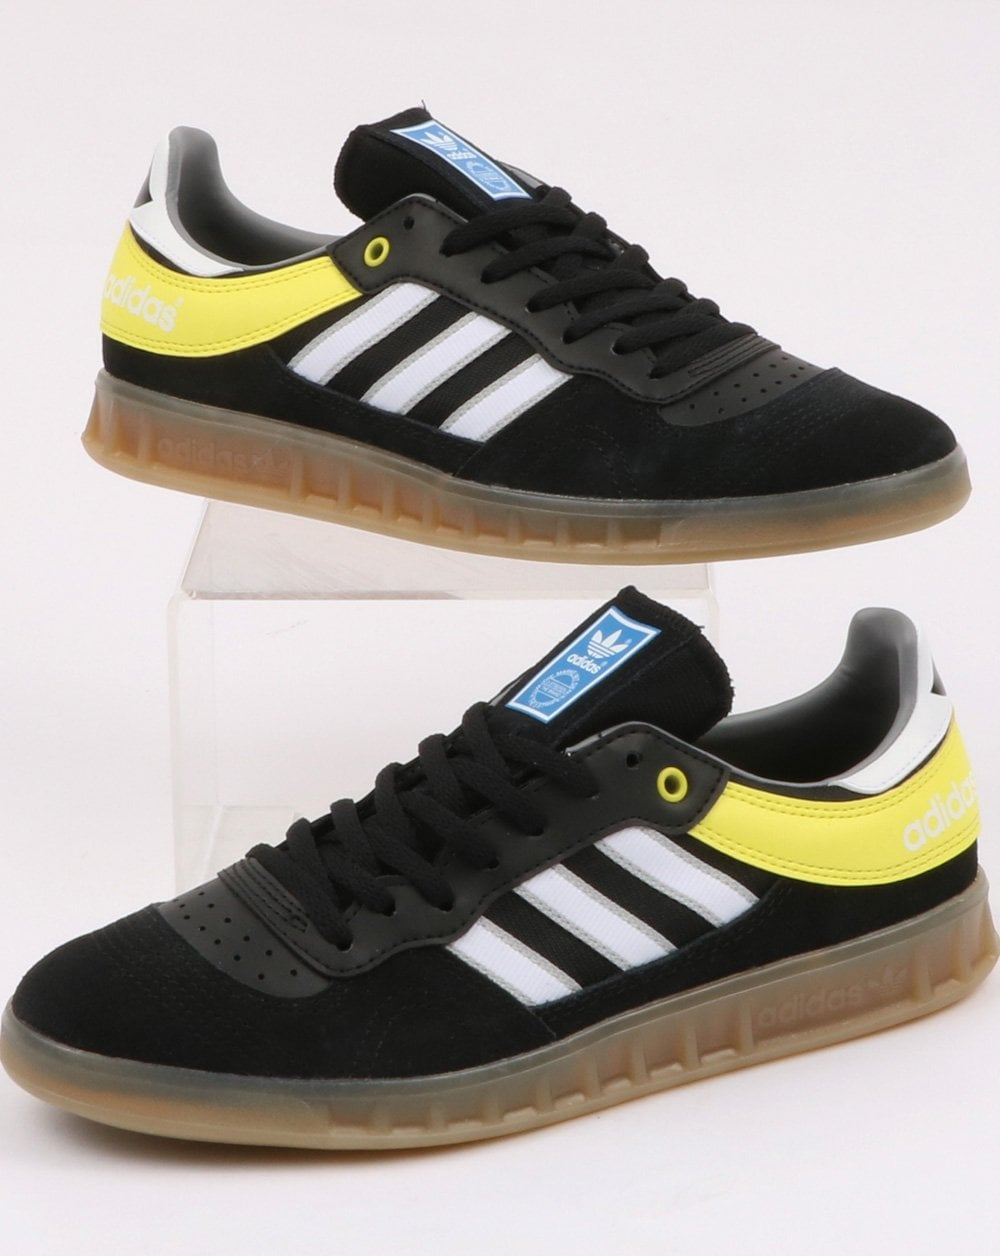 adidas Trainers Adidas Handball Top Trainers Black White Shock Yellow 433c739a8